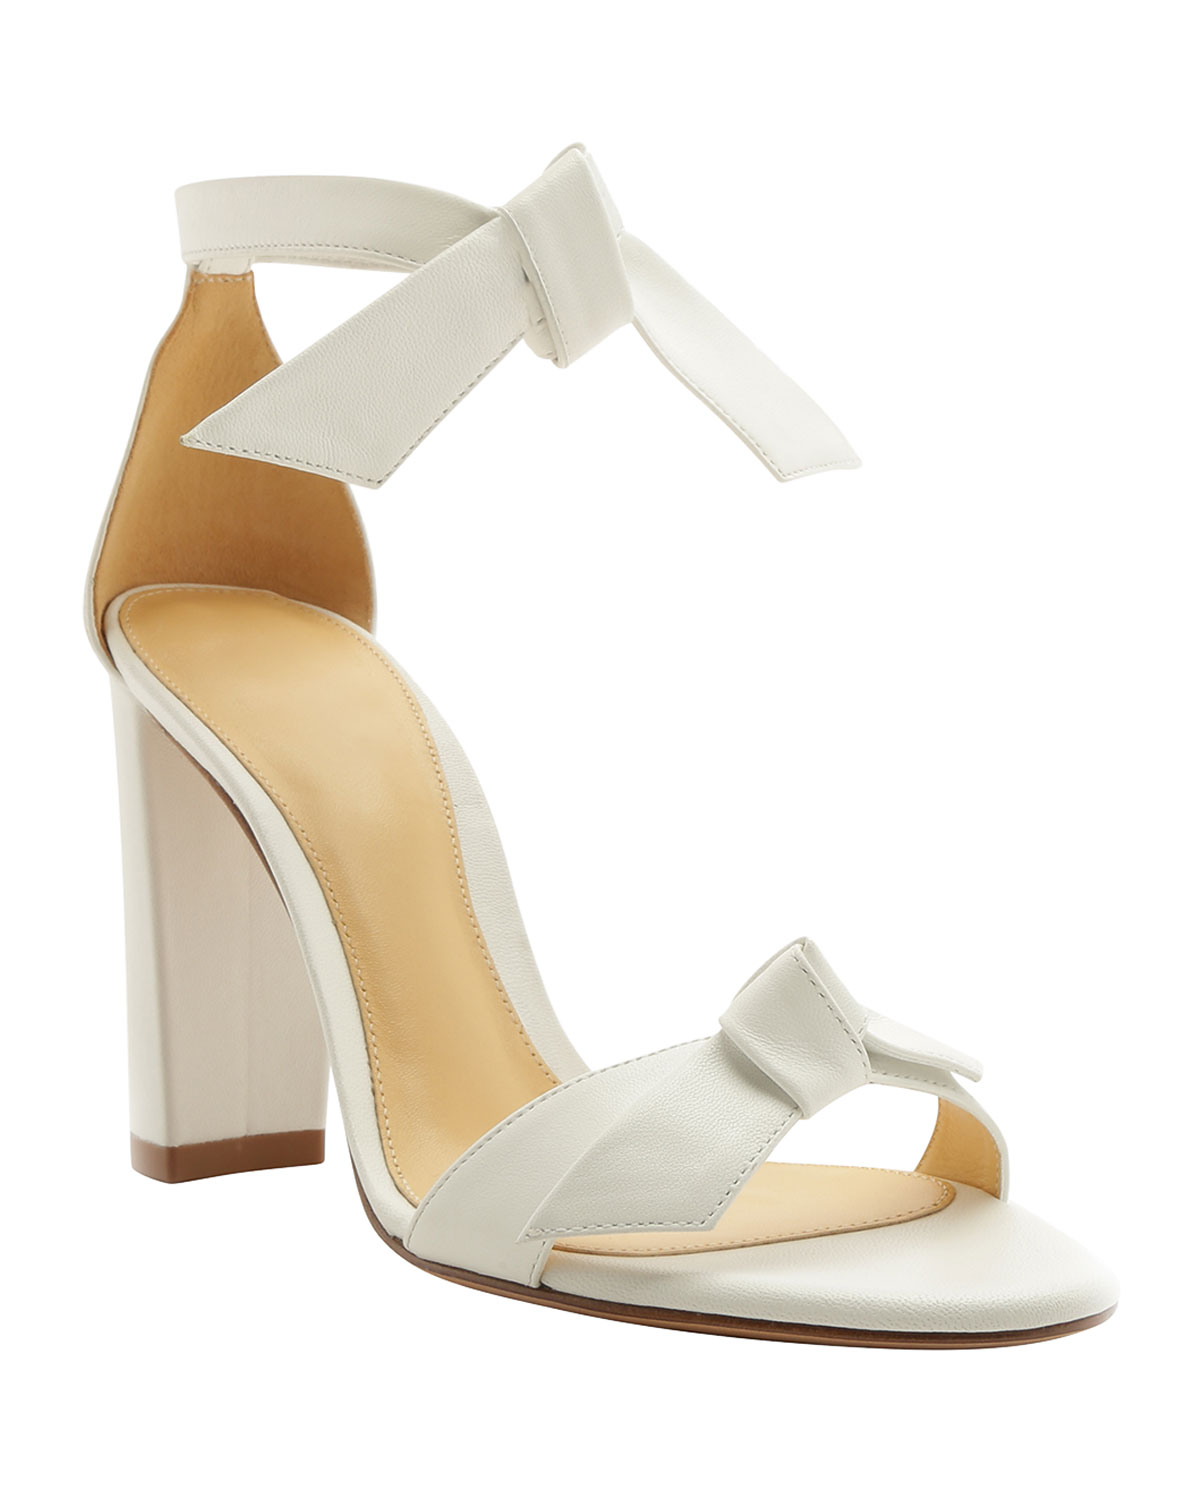 Clarita 90mm Leather Ankle-Tie Sandals